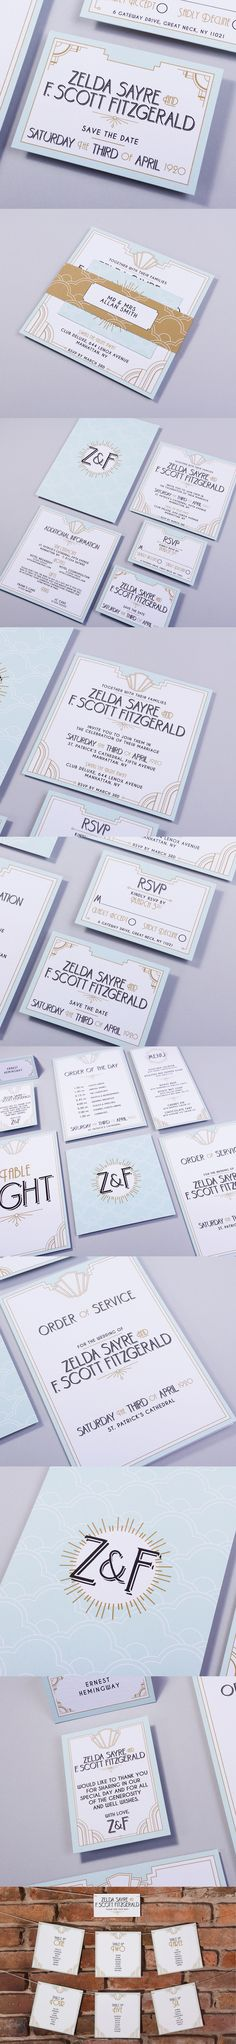 LONG ISLAND, the Long Island design has a 20s art deco feel which is stunning in a pastel/gold colour scheme. Perfect for a Great Gatsby or 20s vintage themed wedding day.